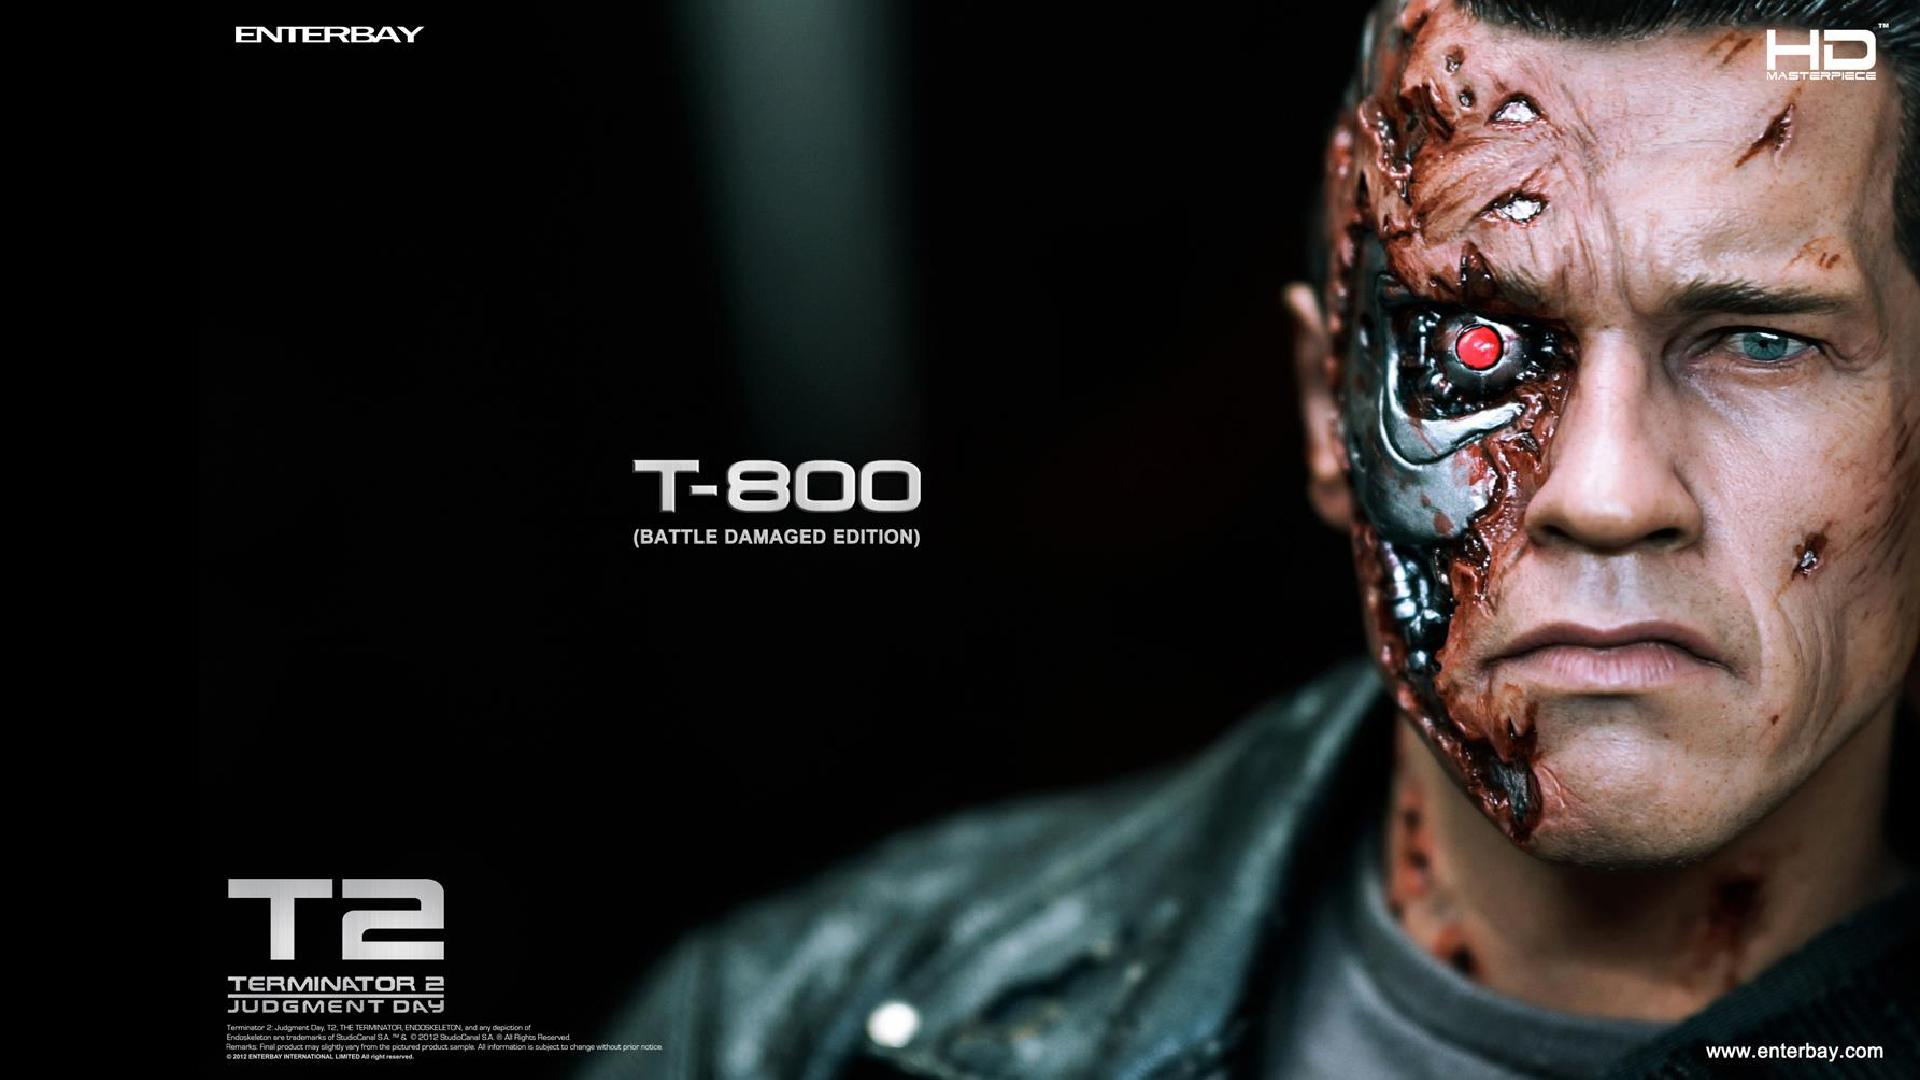 Terminator 2 Judgment Day wallpapers and images - wallpapers ...